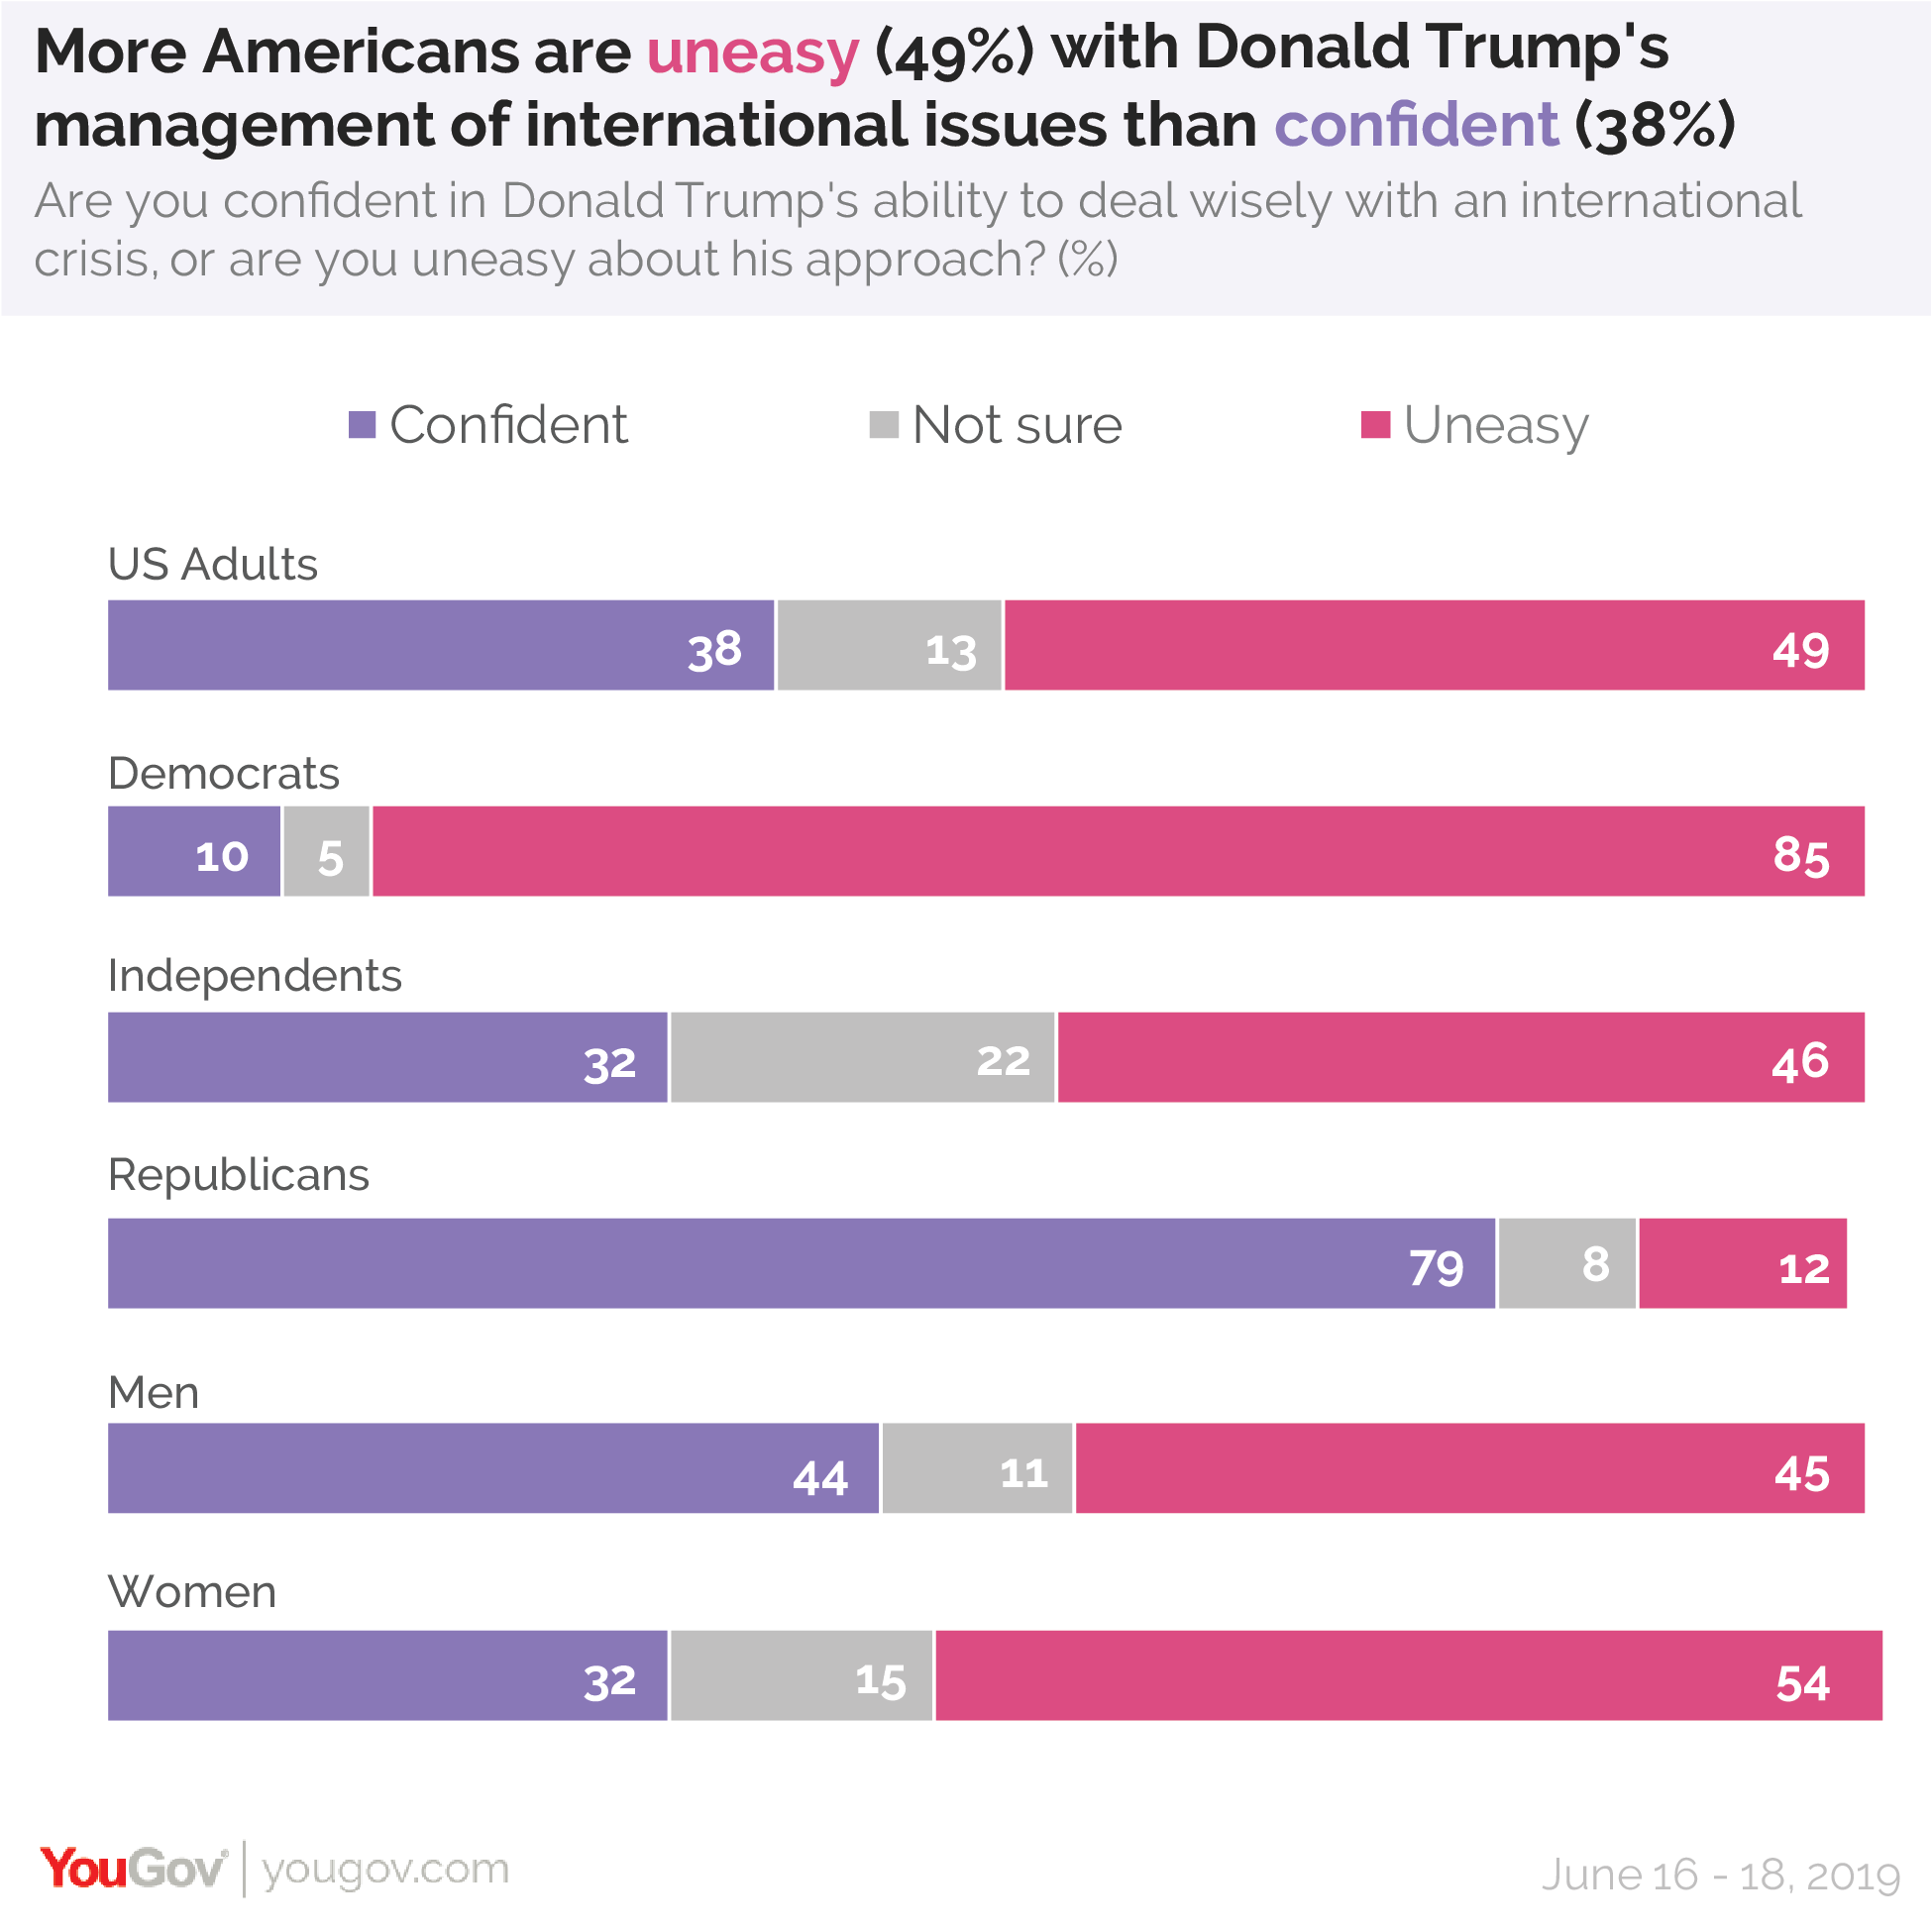 More Americans are uneasy with Donald Trump's management of international issues than confident